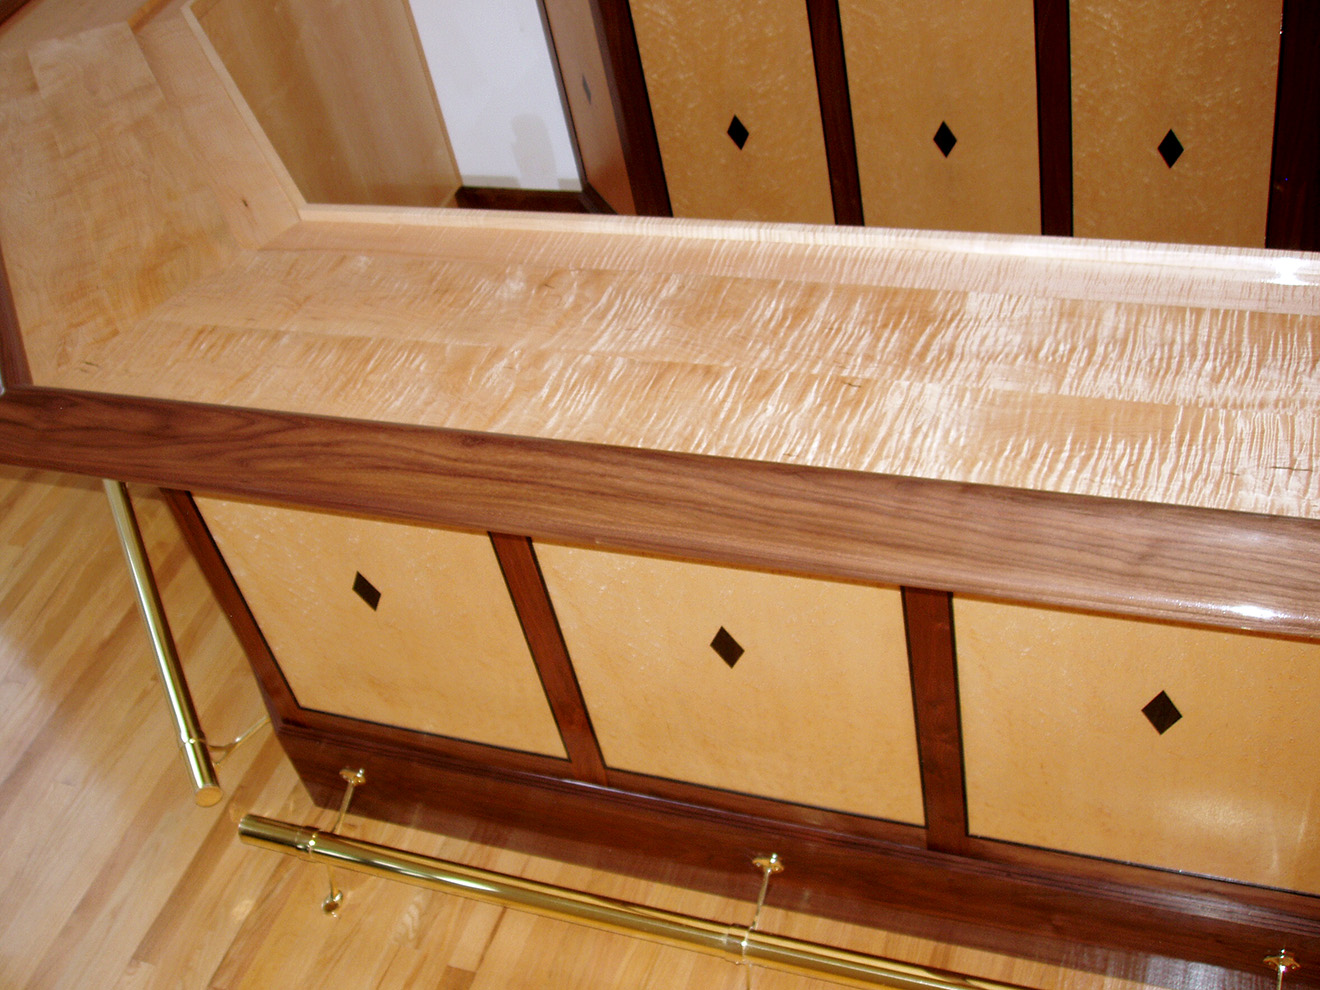 """Custom Deco Bar Solid Tiger Maple, Walnut handrail, sequence matched Birdseye Maple, Ebony inlays and moldings. Solid brass foot rails and brackets. Mortise and tenon and mitre/spline joinery. bar - 42""""h × 16'l × 24""""d (9'd overall) cabinet - 96""""h × 74""""w × 13""""d"""